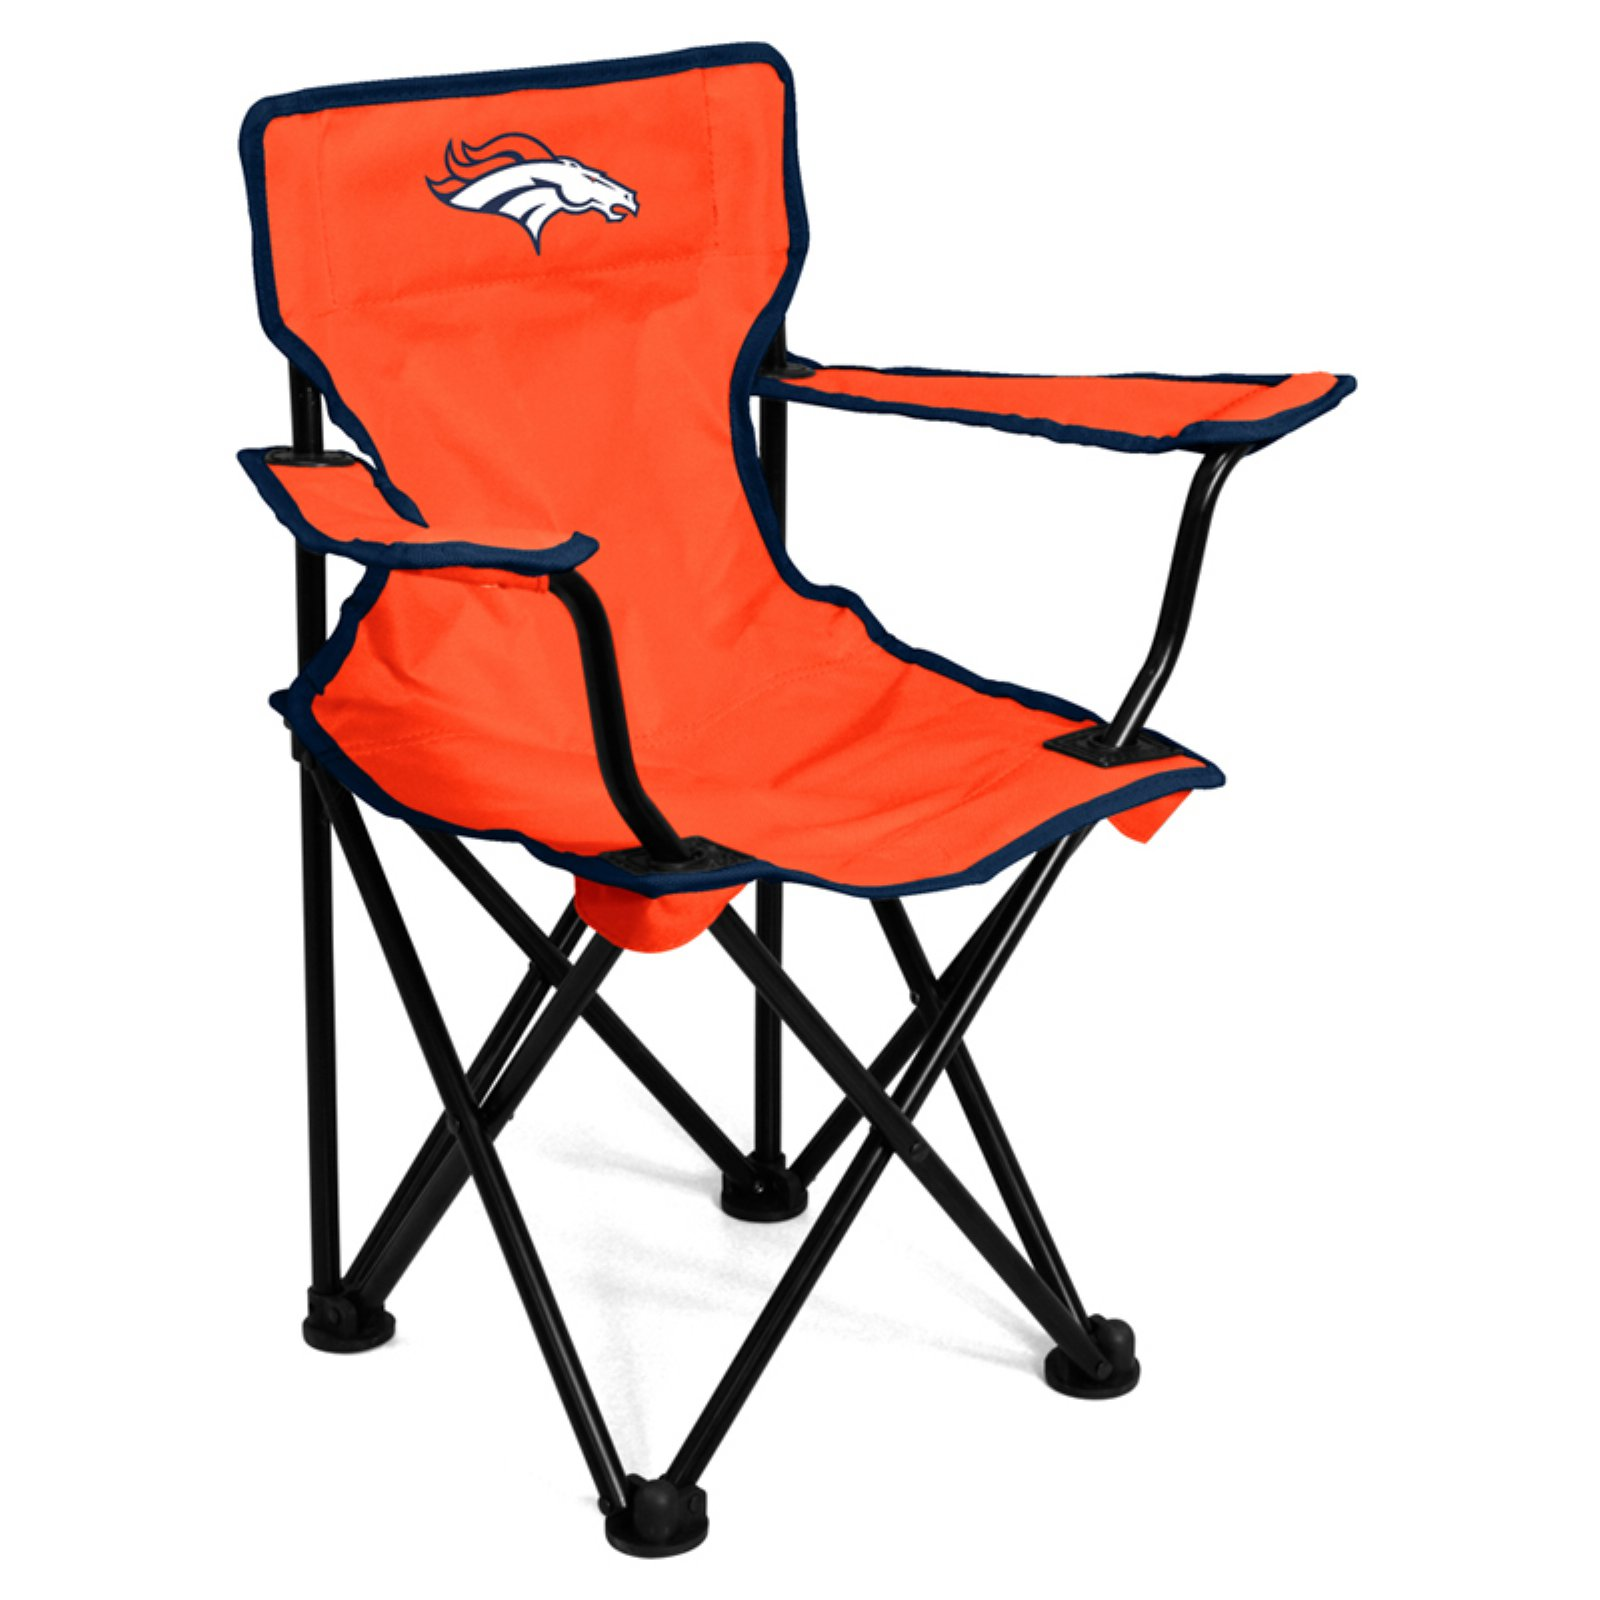 Outstanding Logo Brands Nfl Toddler Outdoor Lawn Chair Products In Machost Co Dining Chair Design Ideas Machostcouk